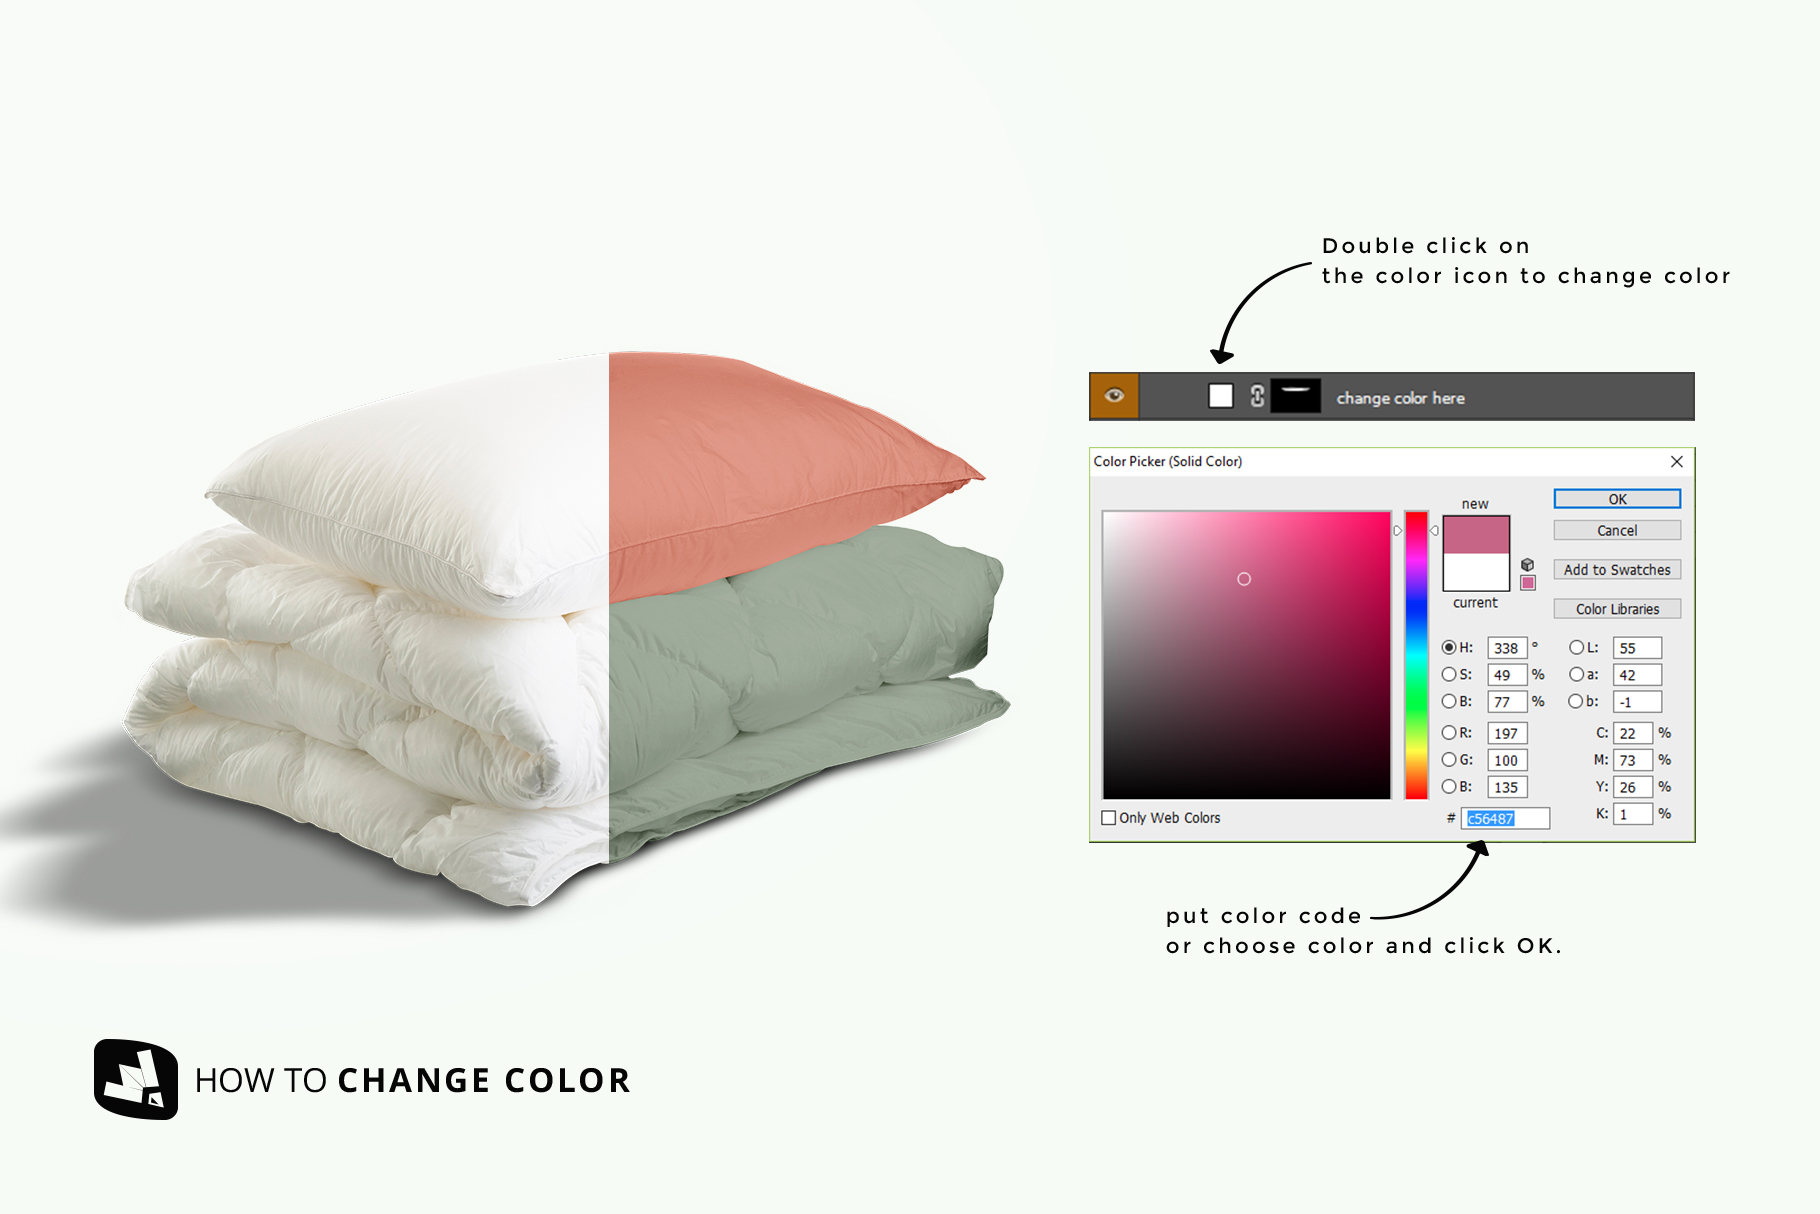 how to change color of the duvet & pillow case mockup